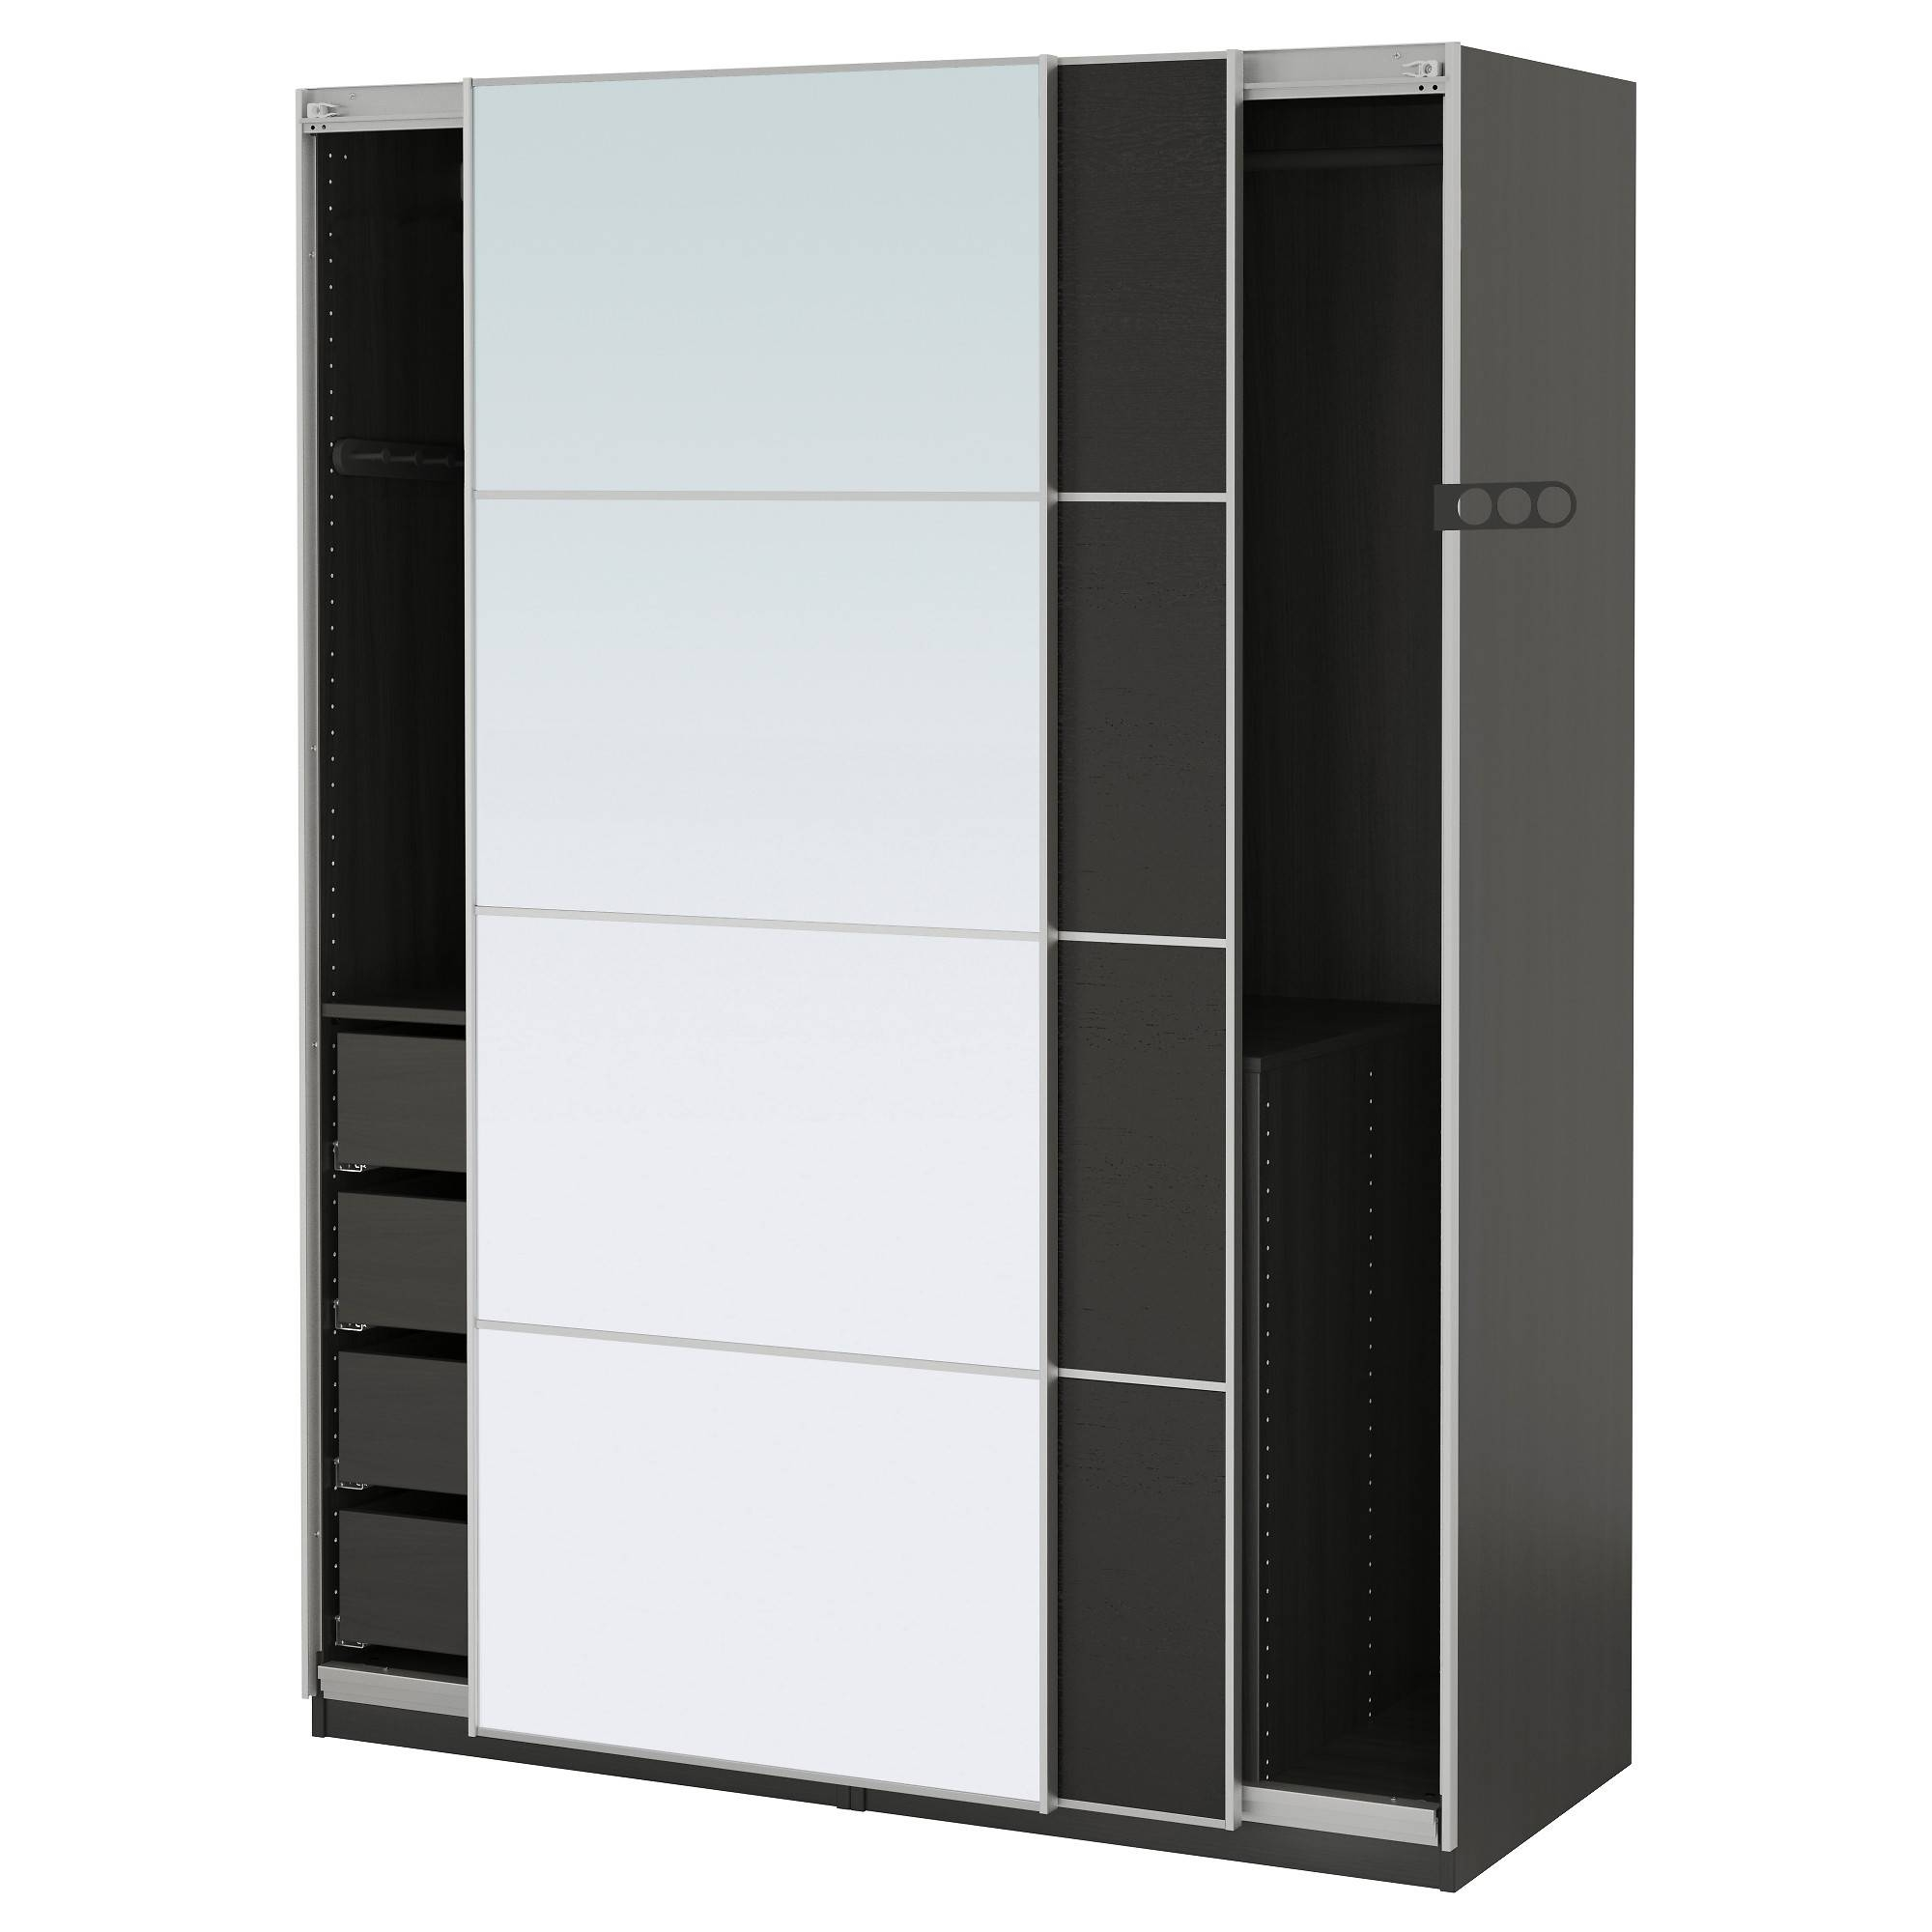 Wardrobes - Pax System - Ikea with regard to Wardrobe With Shelves And Drawers (Image 25 of 30)